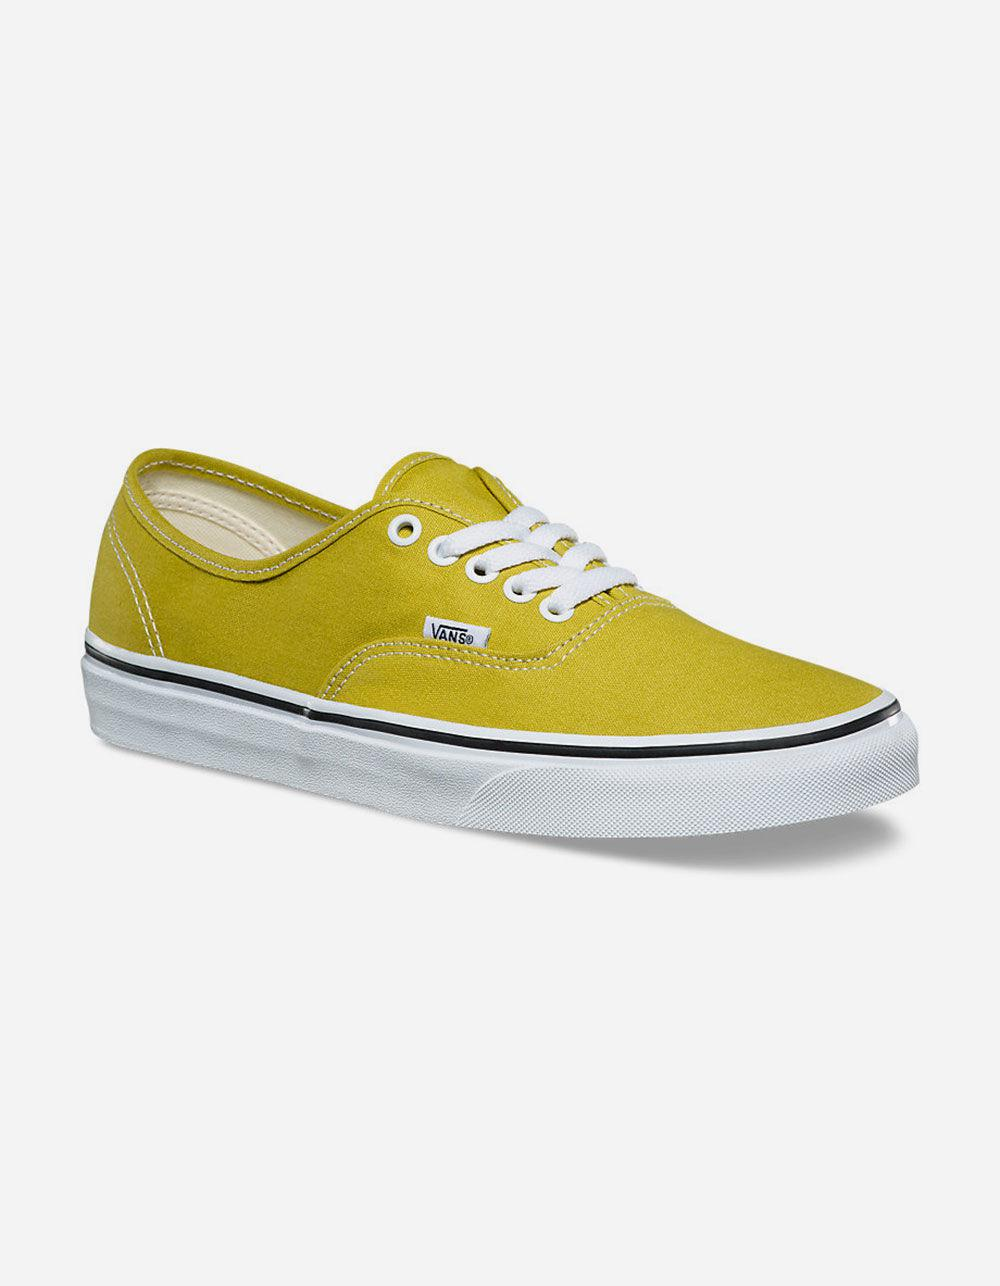 7eef0108668fc8 Lyst - Vans Authentic Cress Green   True White Mens Shoes for Men